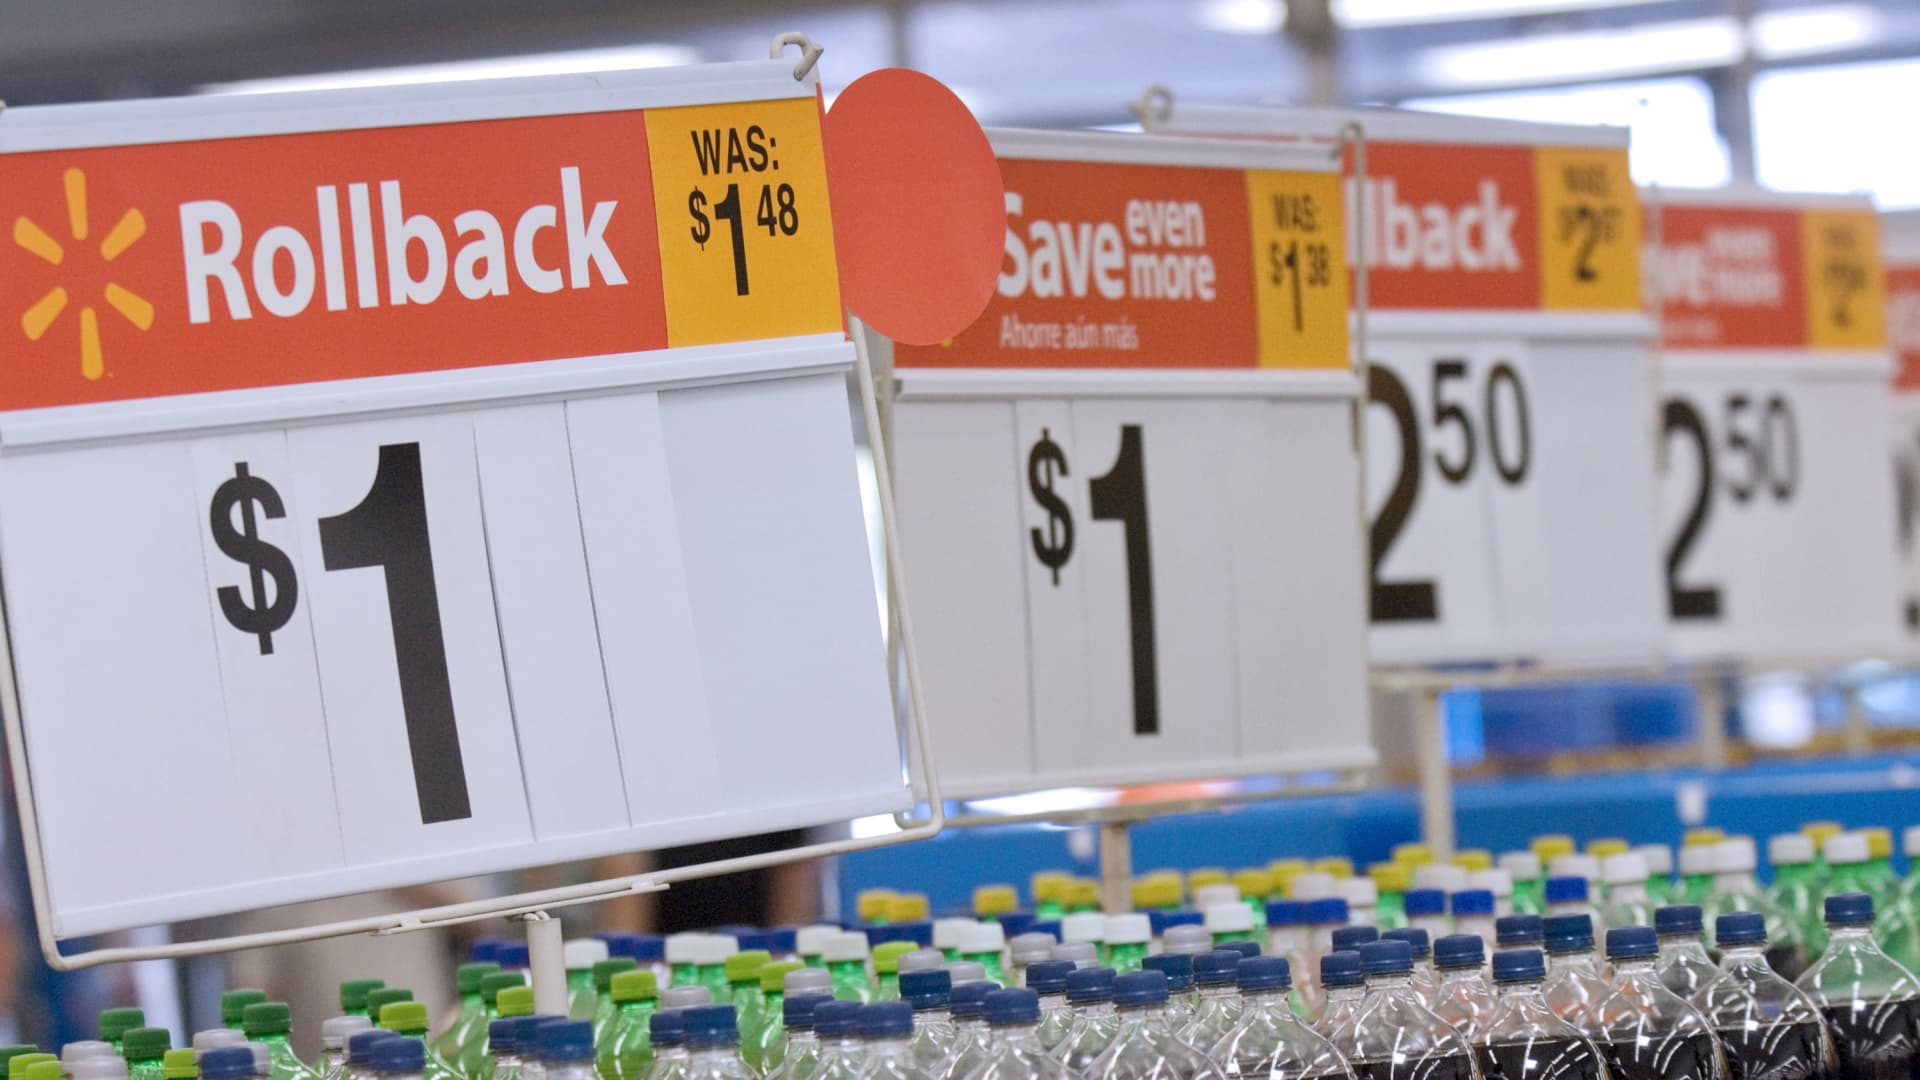 Discounts on soda at a WalMart store in Rogers, Arkansas.